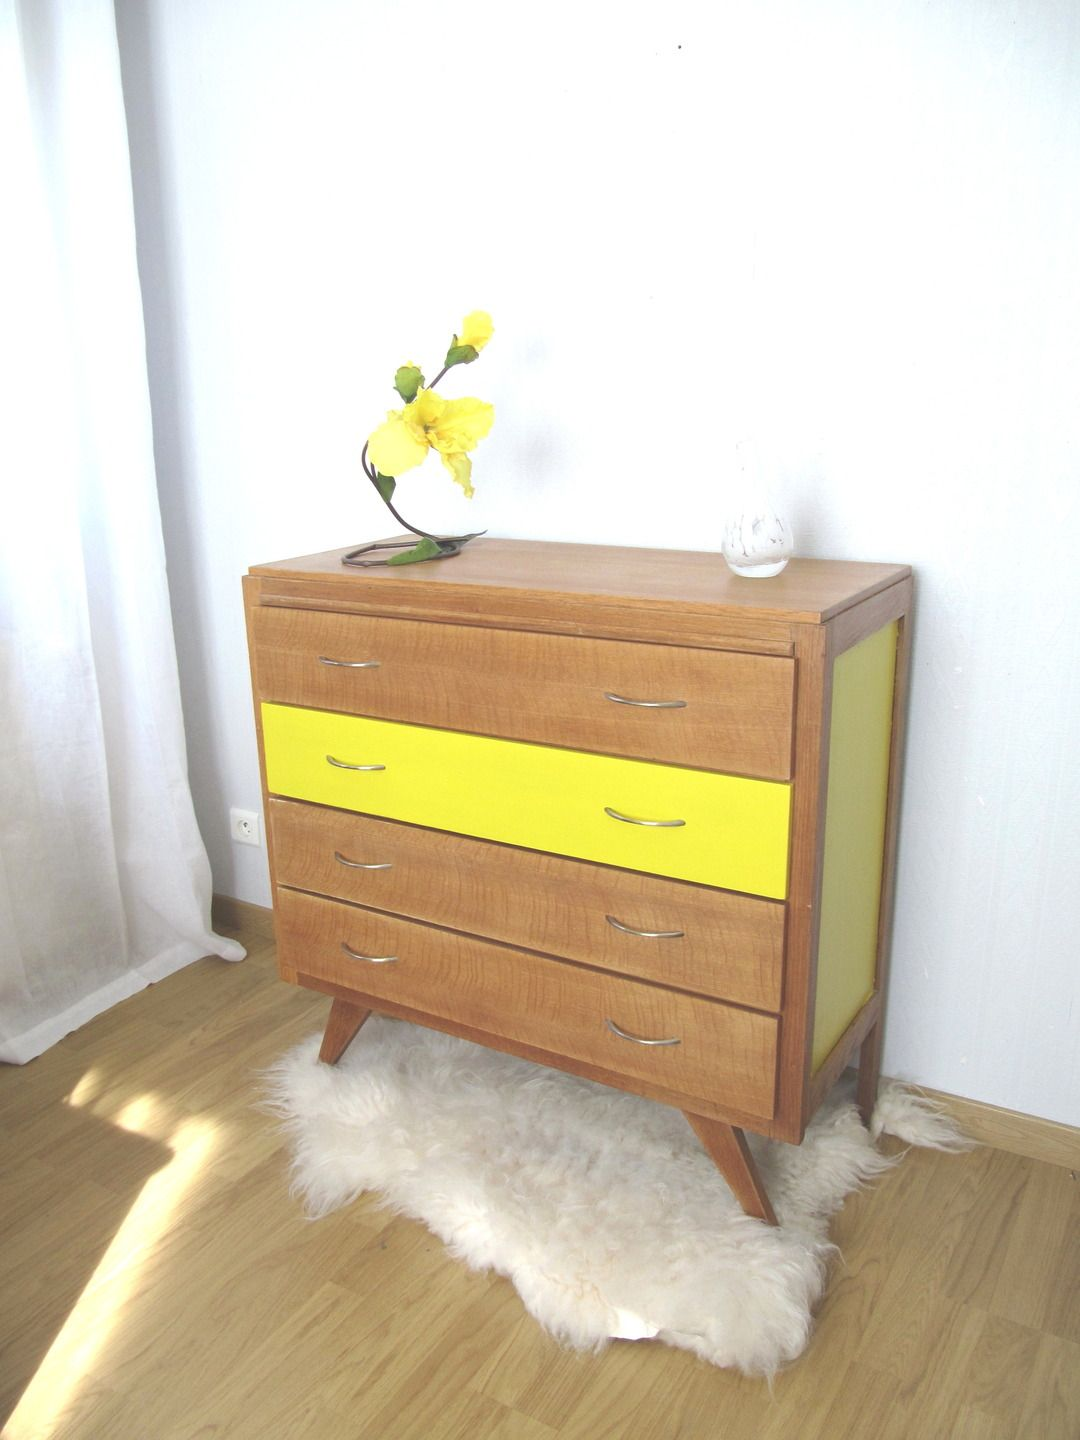 commode ann es 60 ch ne et jaune pop meubles et. Black Bedroom Furniture Sets. Home Design Ideas